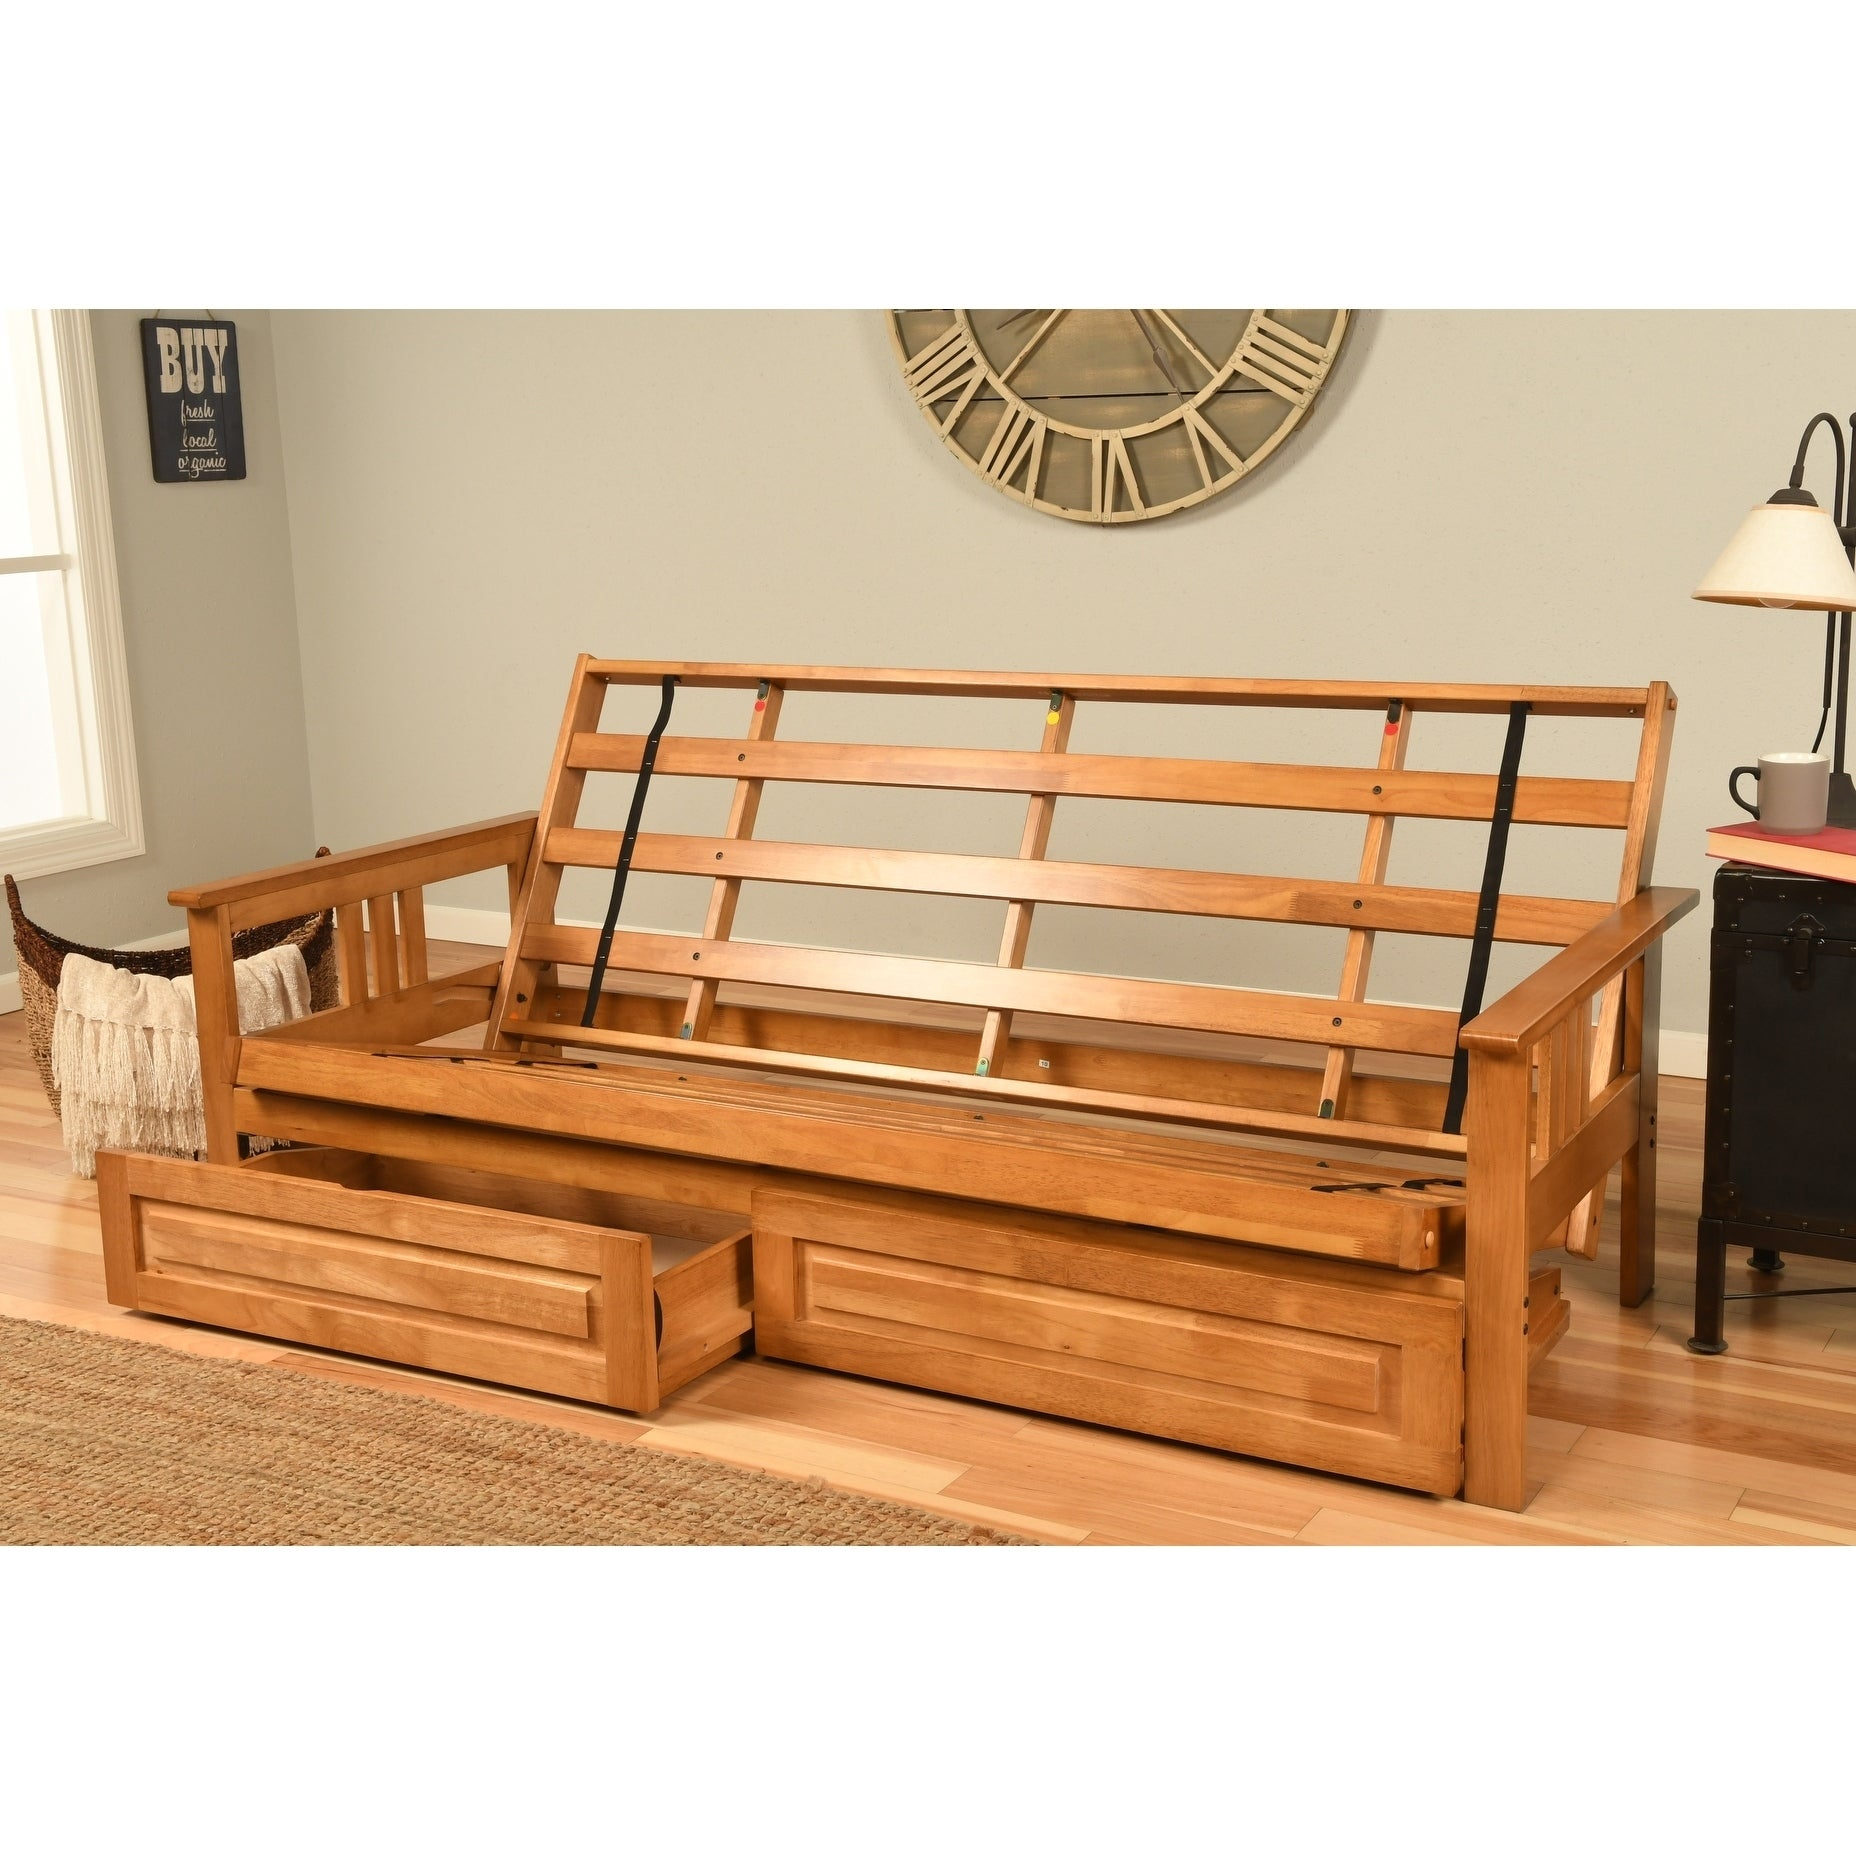 Shop Somette Queen Size Futon With Storage Drawers Overstock 26037551